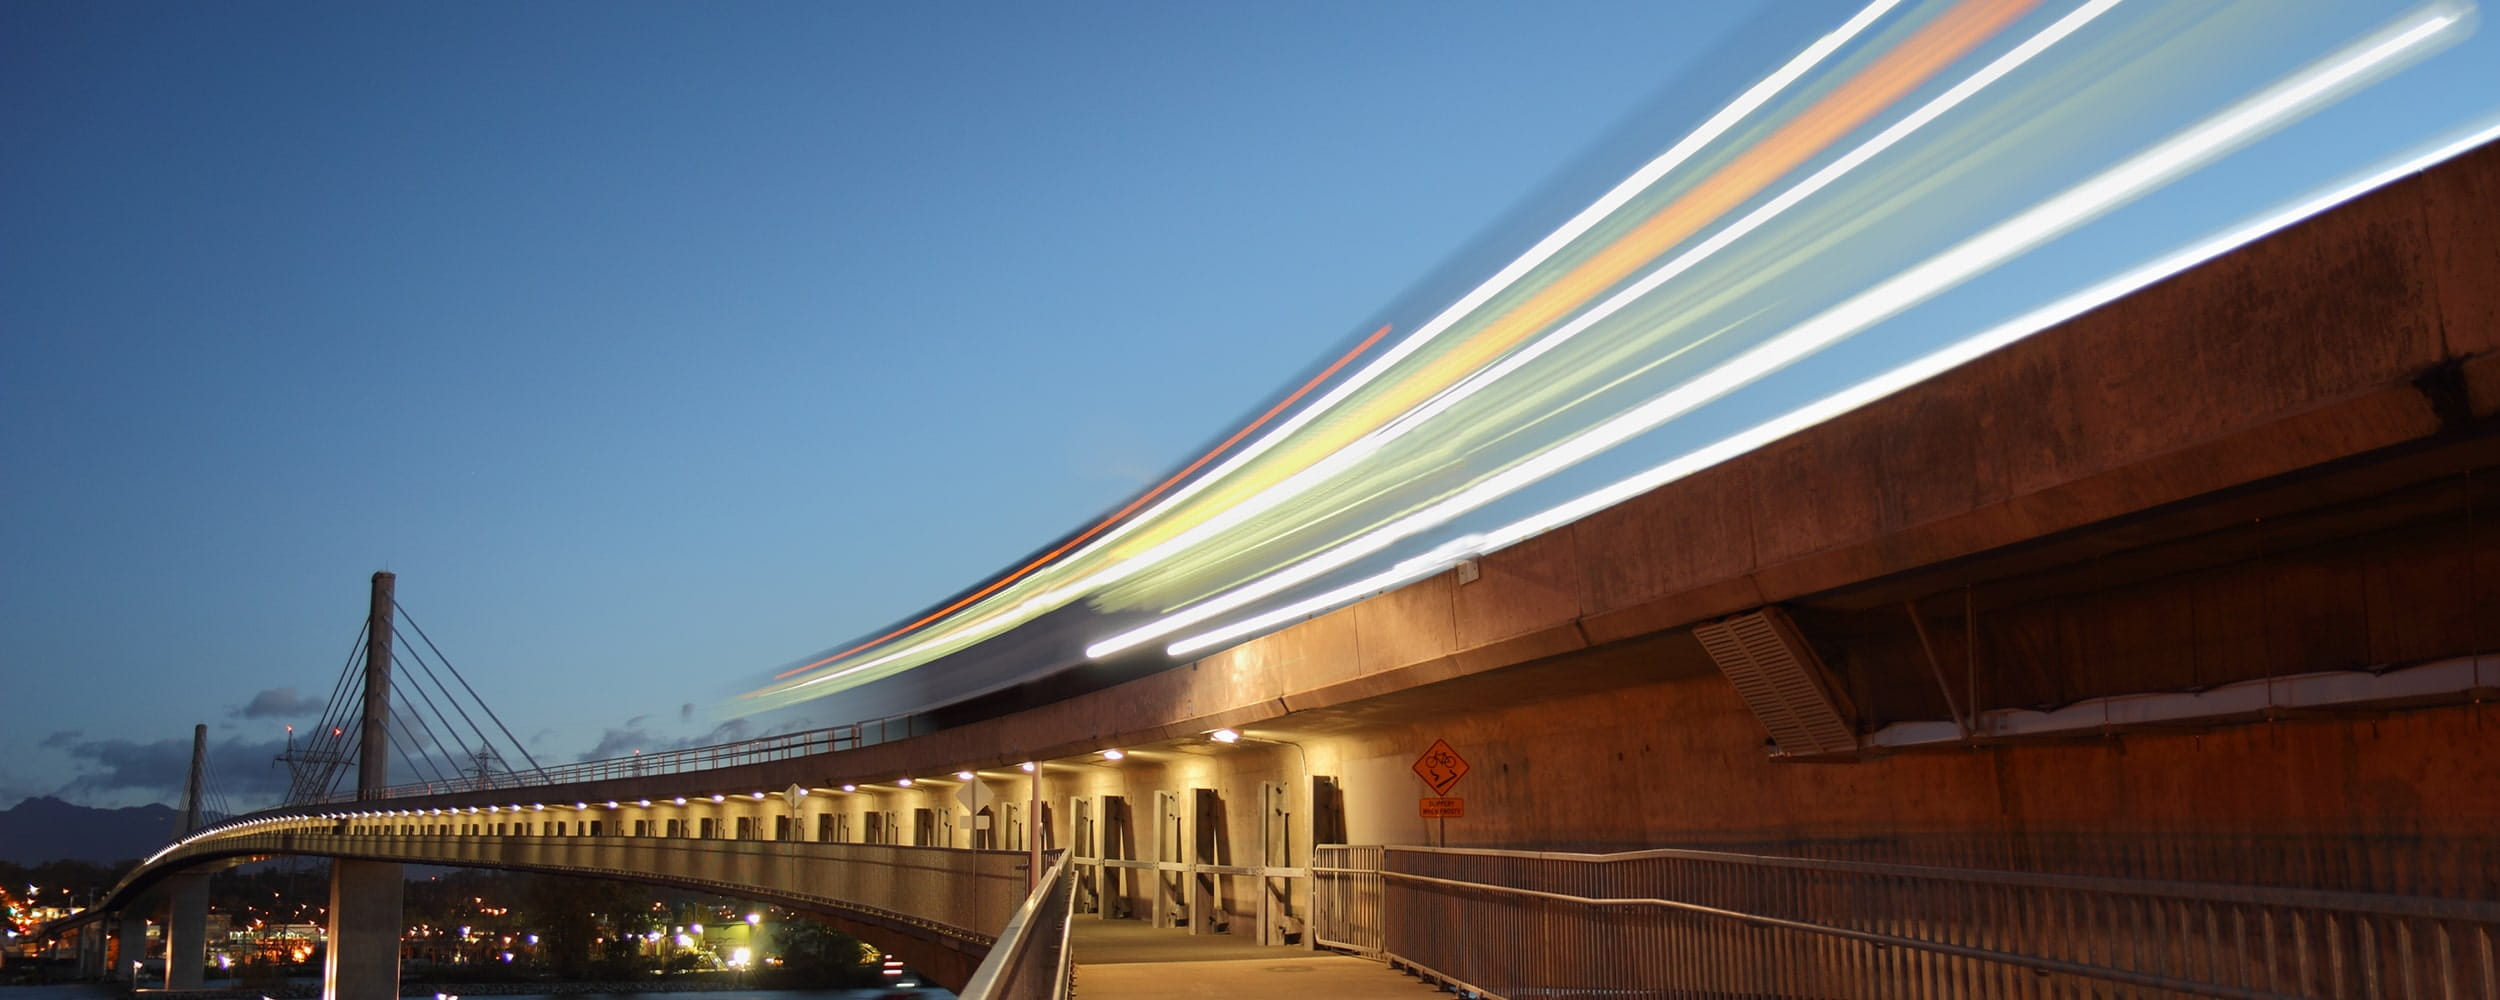 A SkyTrain running on rail against a clear evening sky